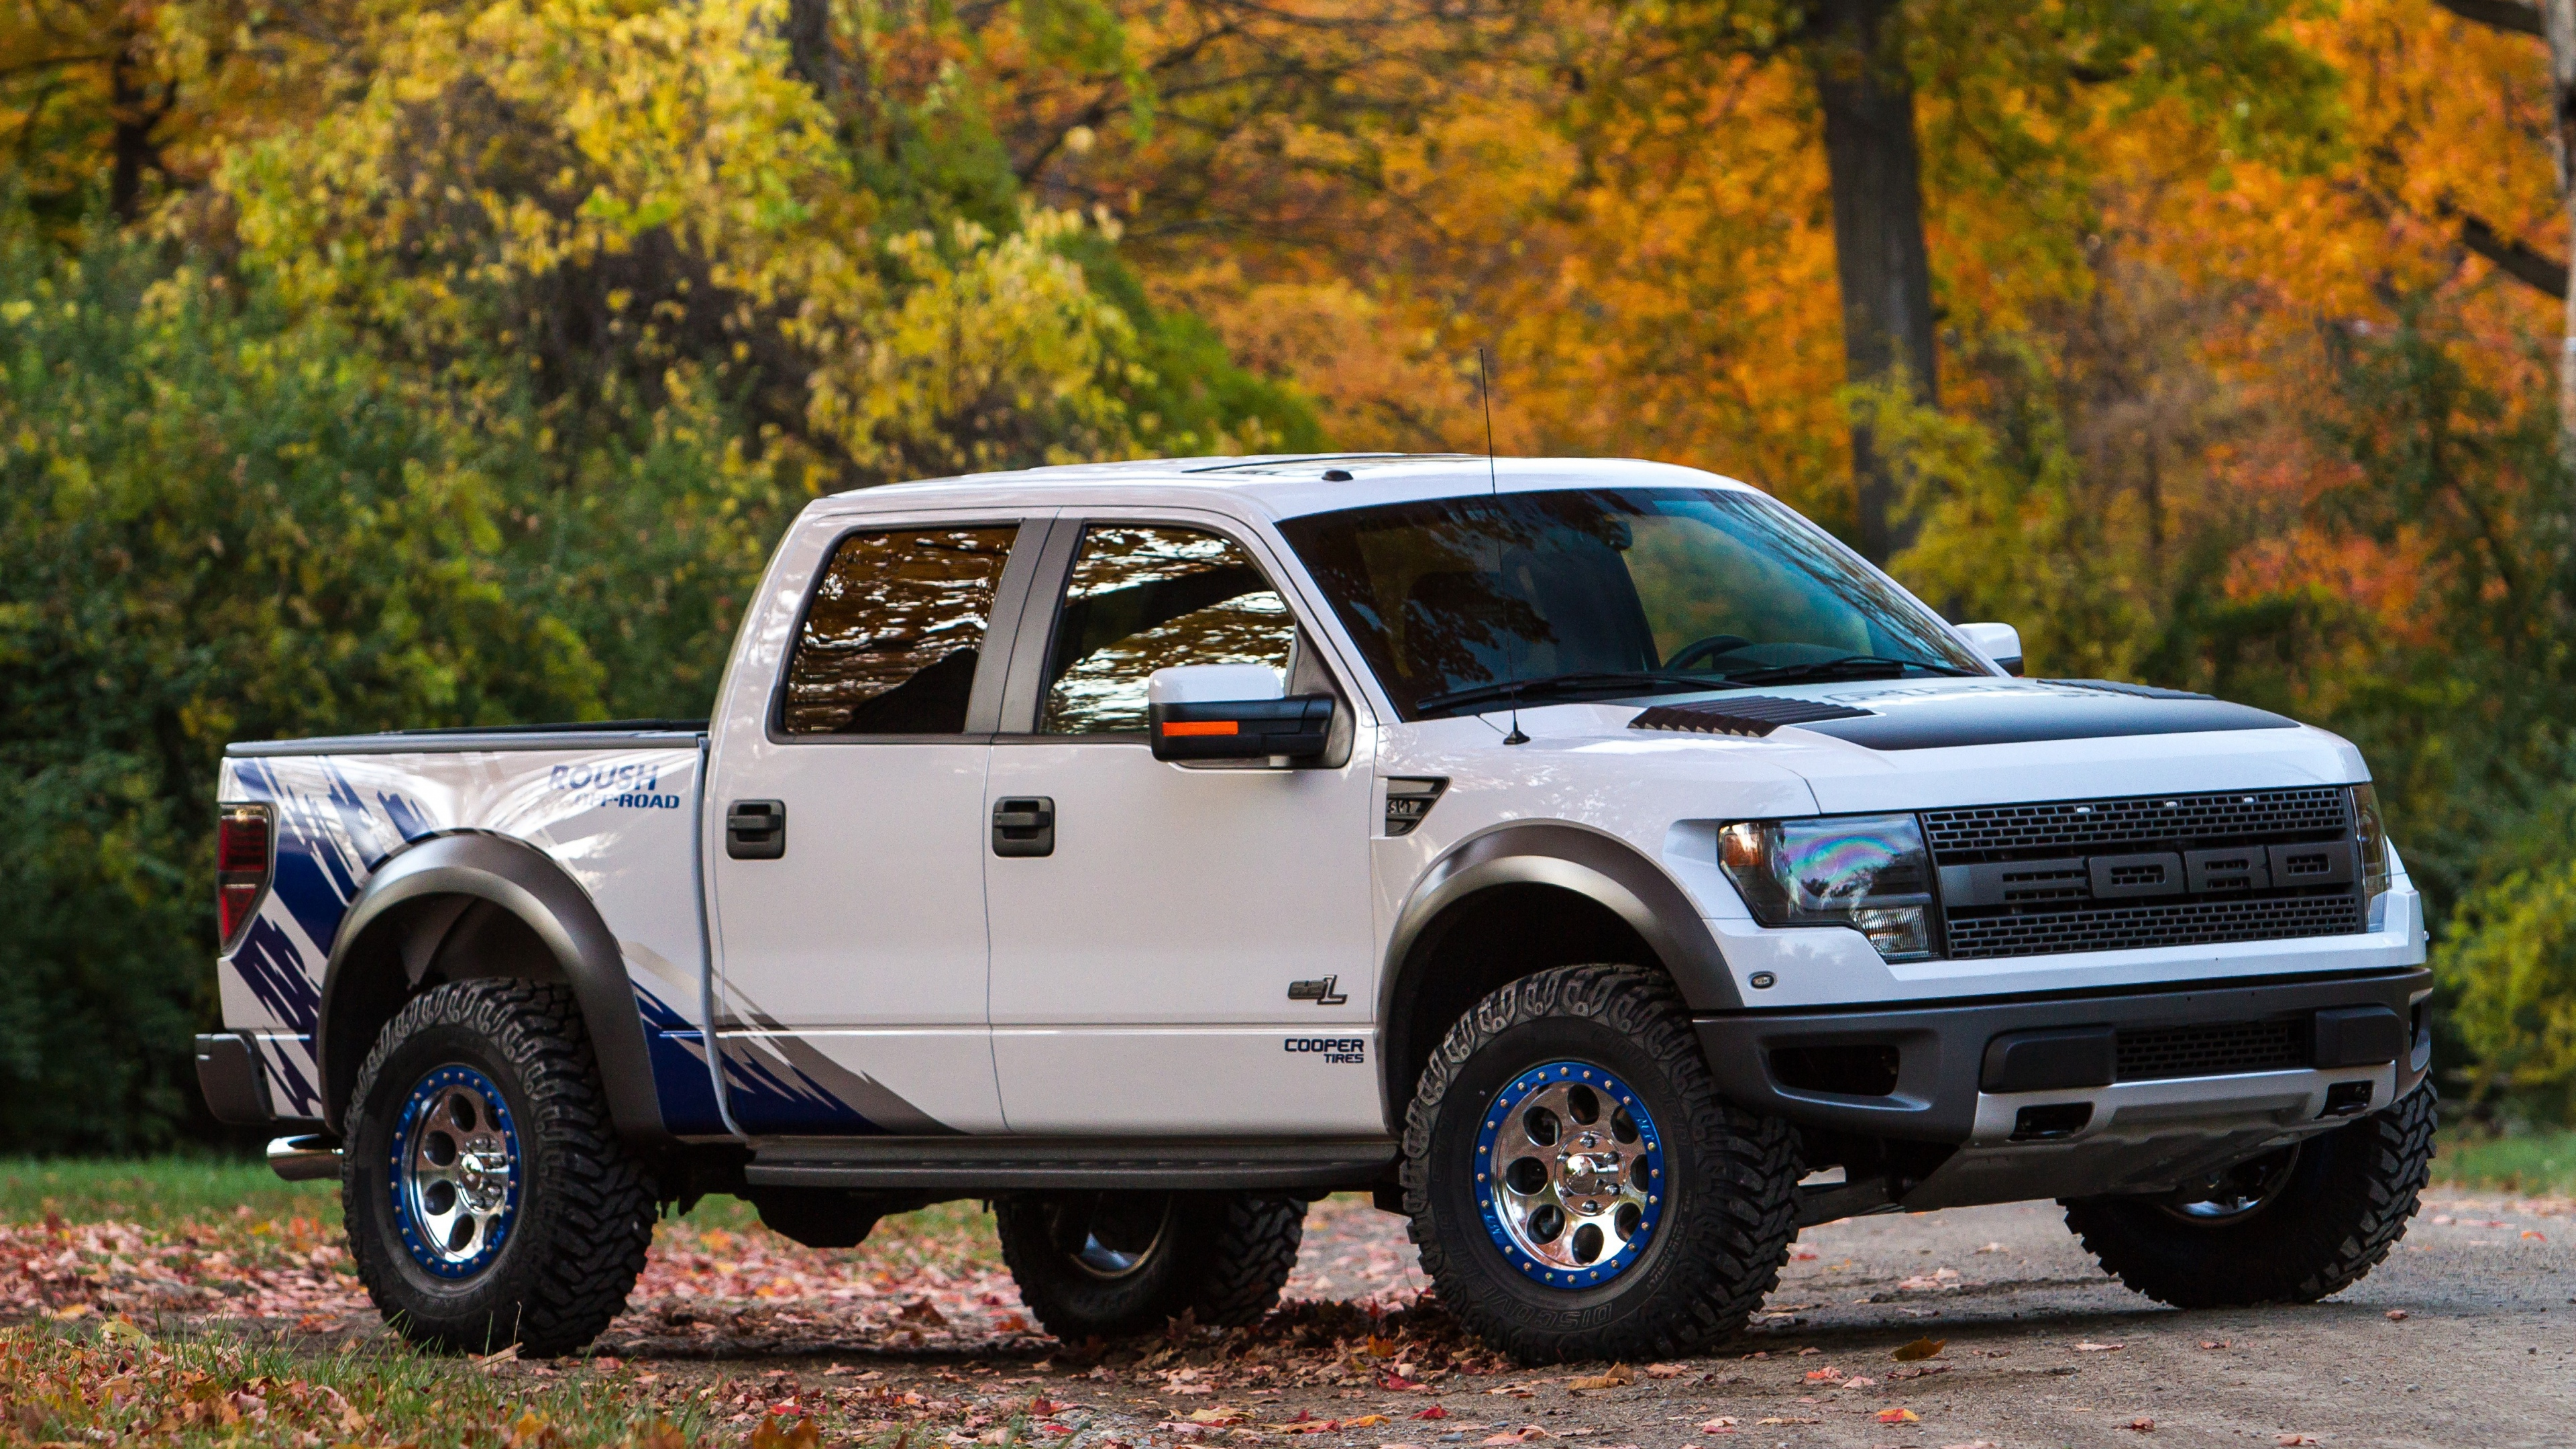 49 ford raptor hd wallpapers background images wallpaper abyss voltagebd Images